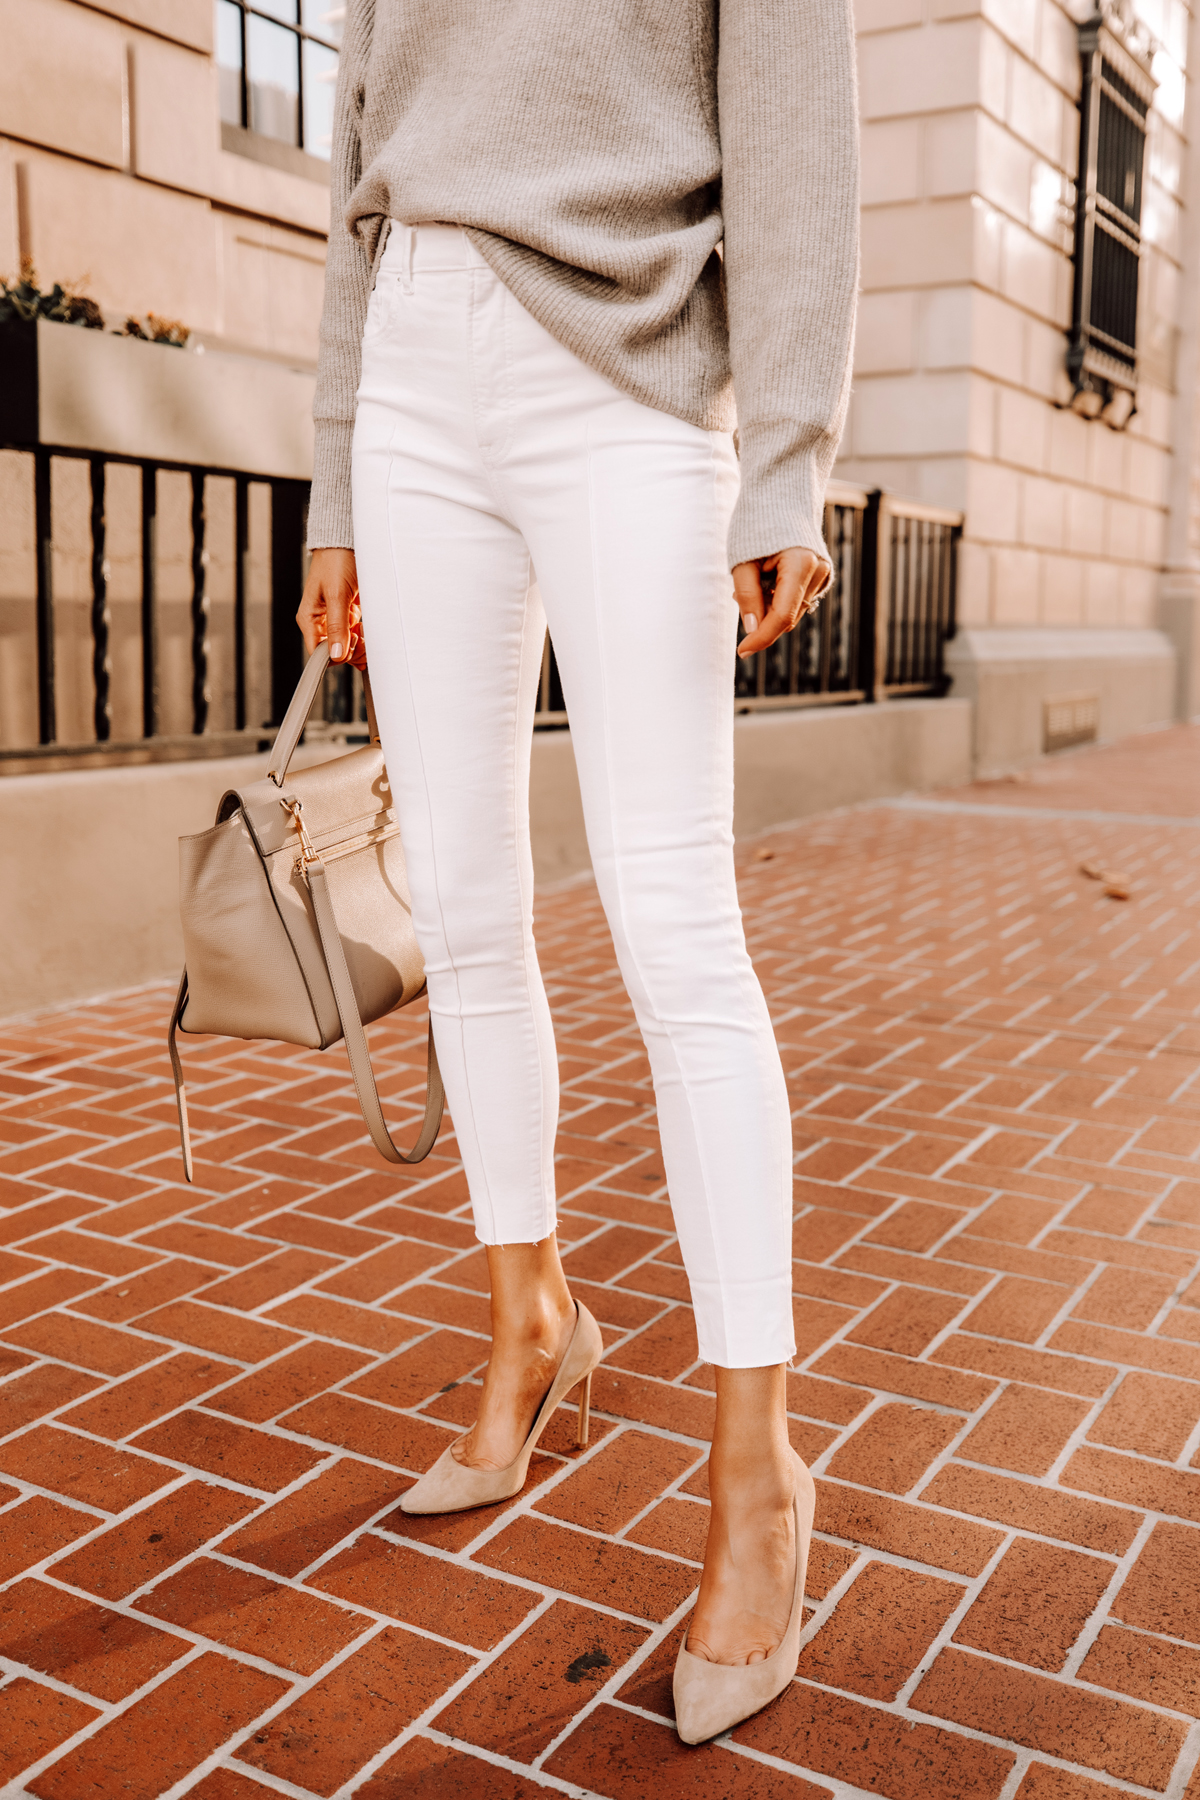 Fashion Jackson Wearing Beige Sweater Express White Skinny Jeans Nude Pumps